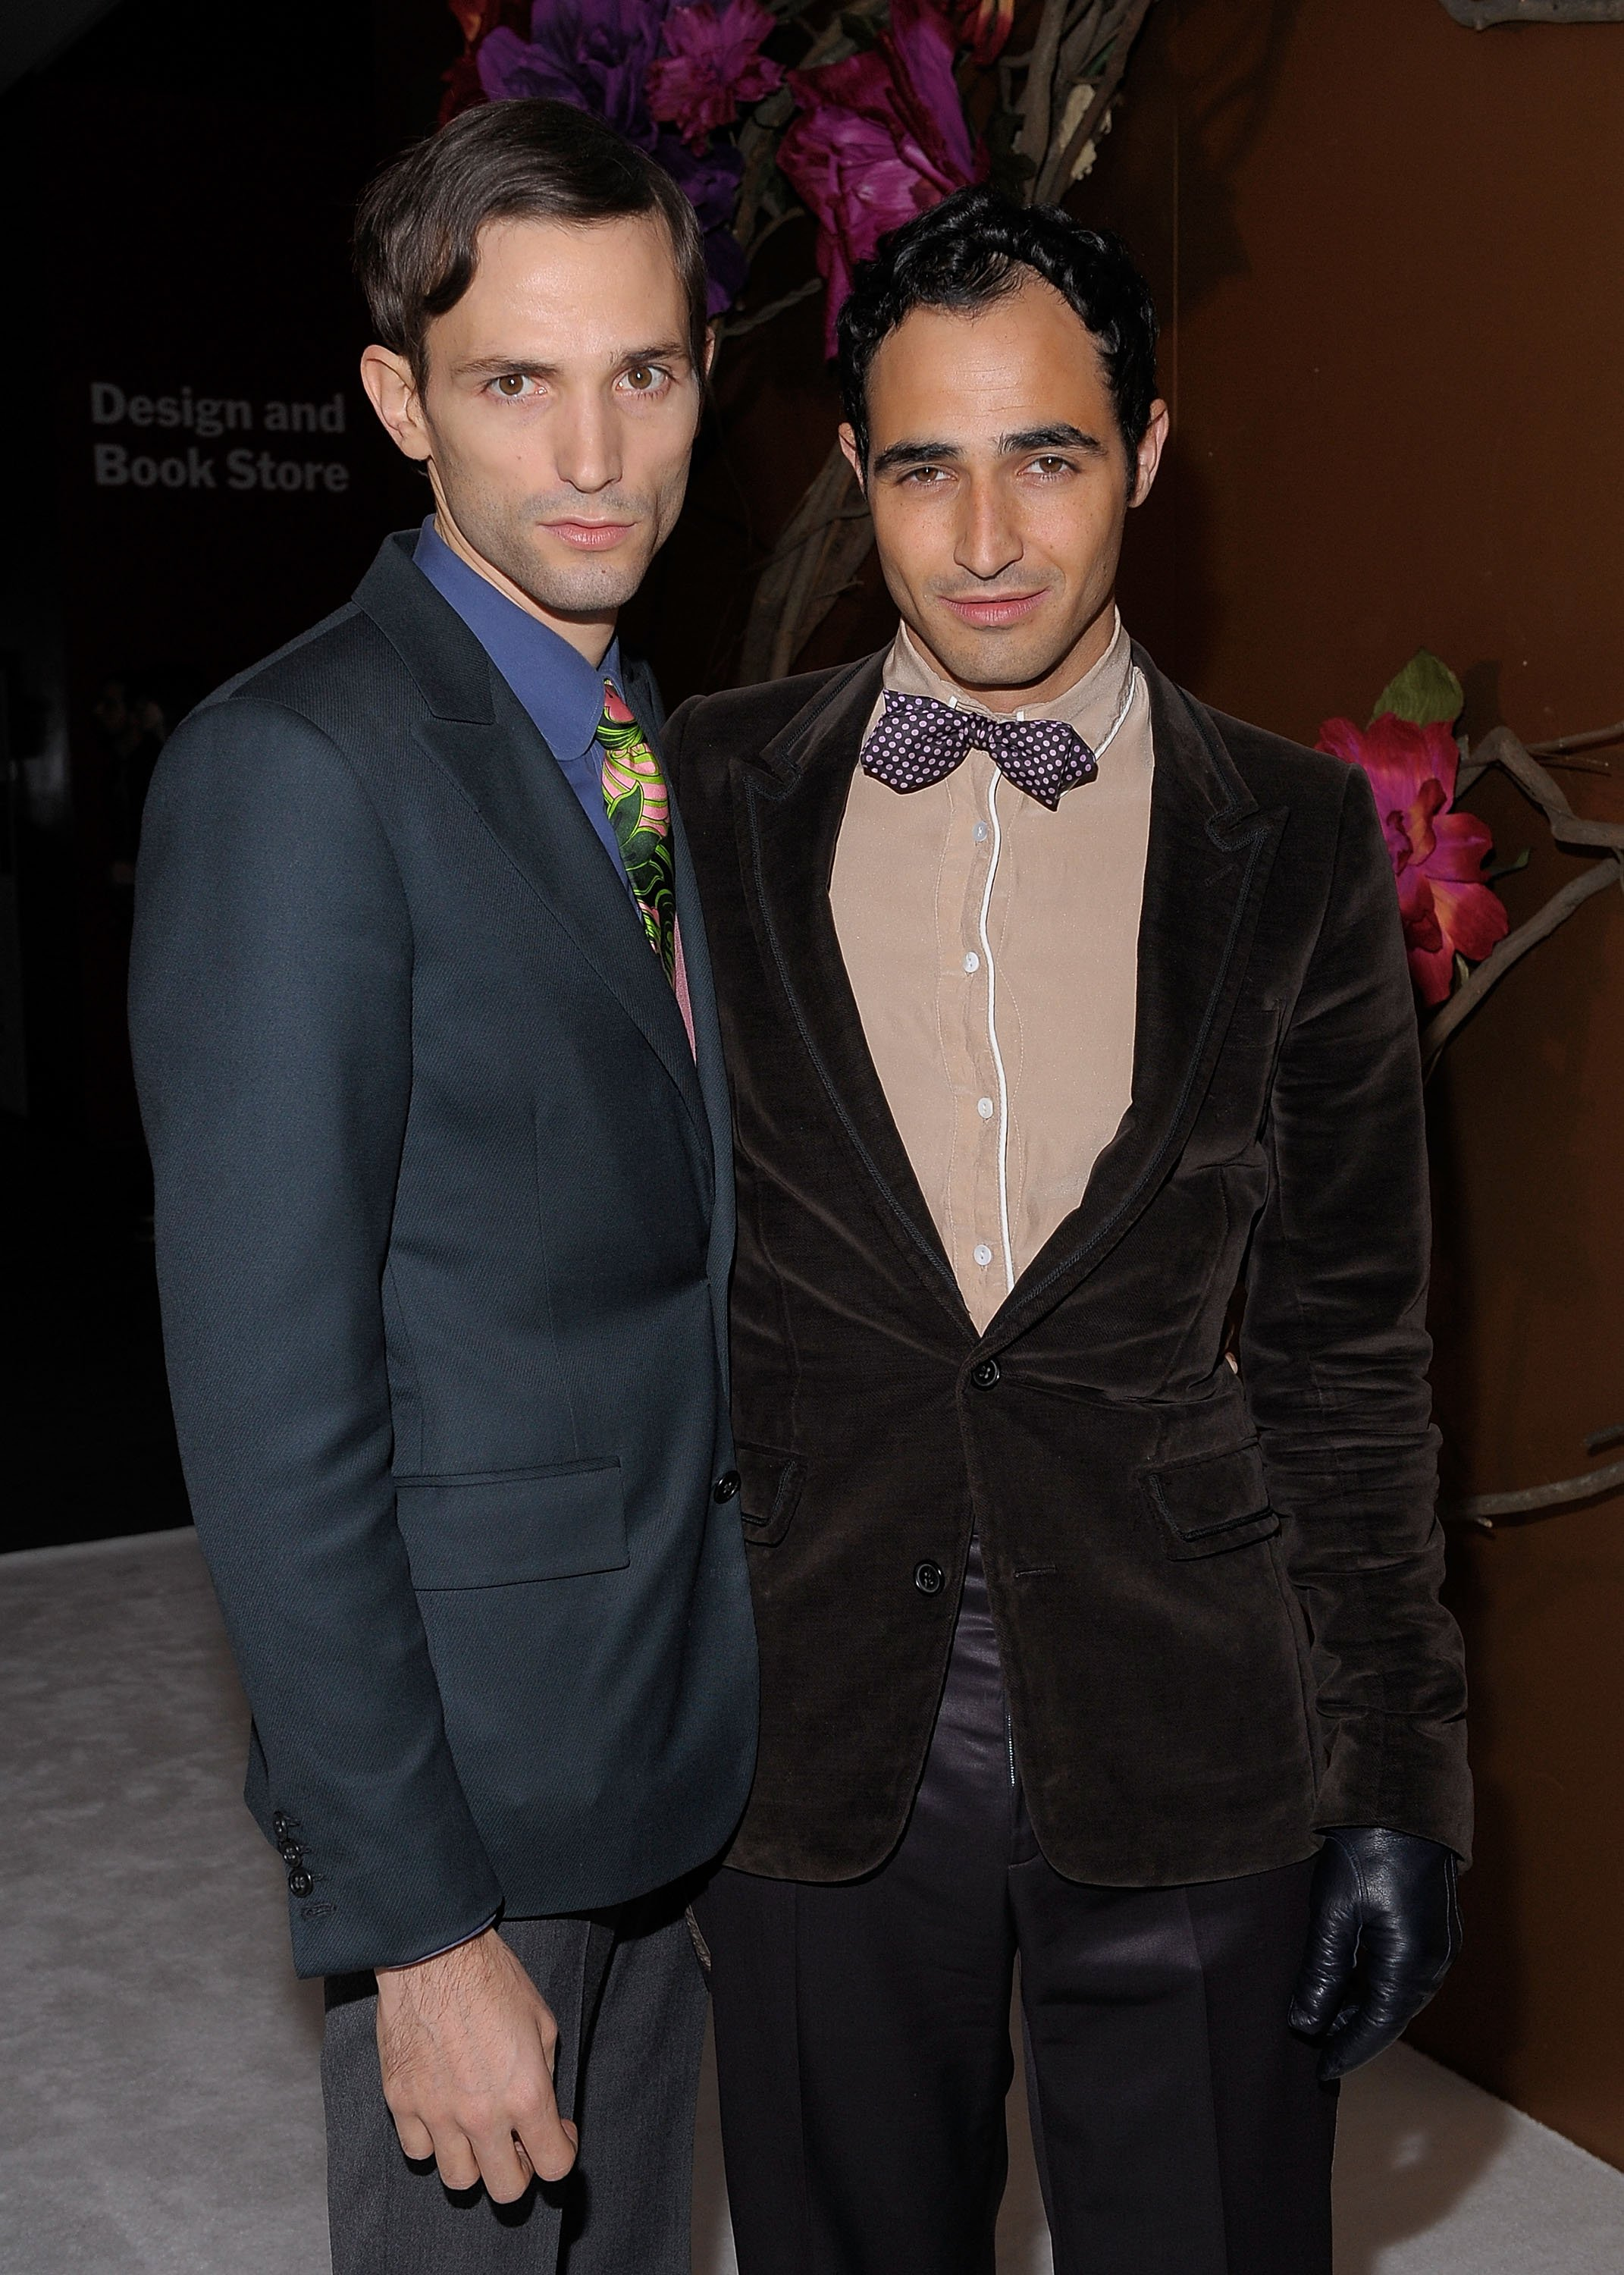 Zac Posen (Right) and Christopher Niquet attend the MoMA's Second Annual Film Benefit, Honoring Tim Burton at the MOMA on November 17, 2009, in New York. | Source: Getty Images.